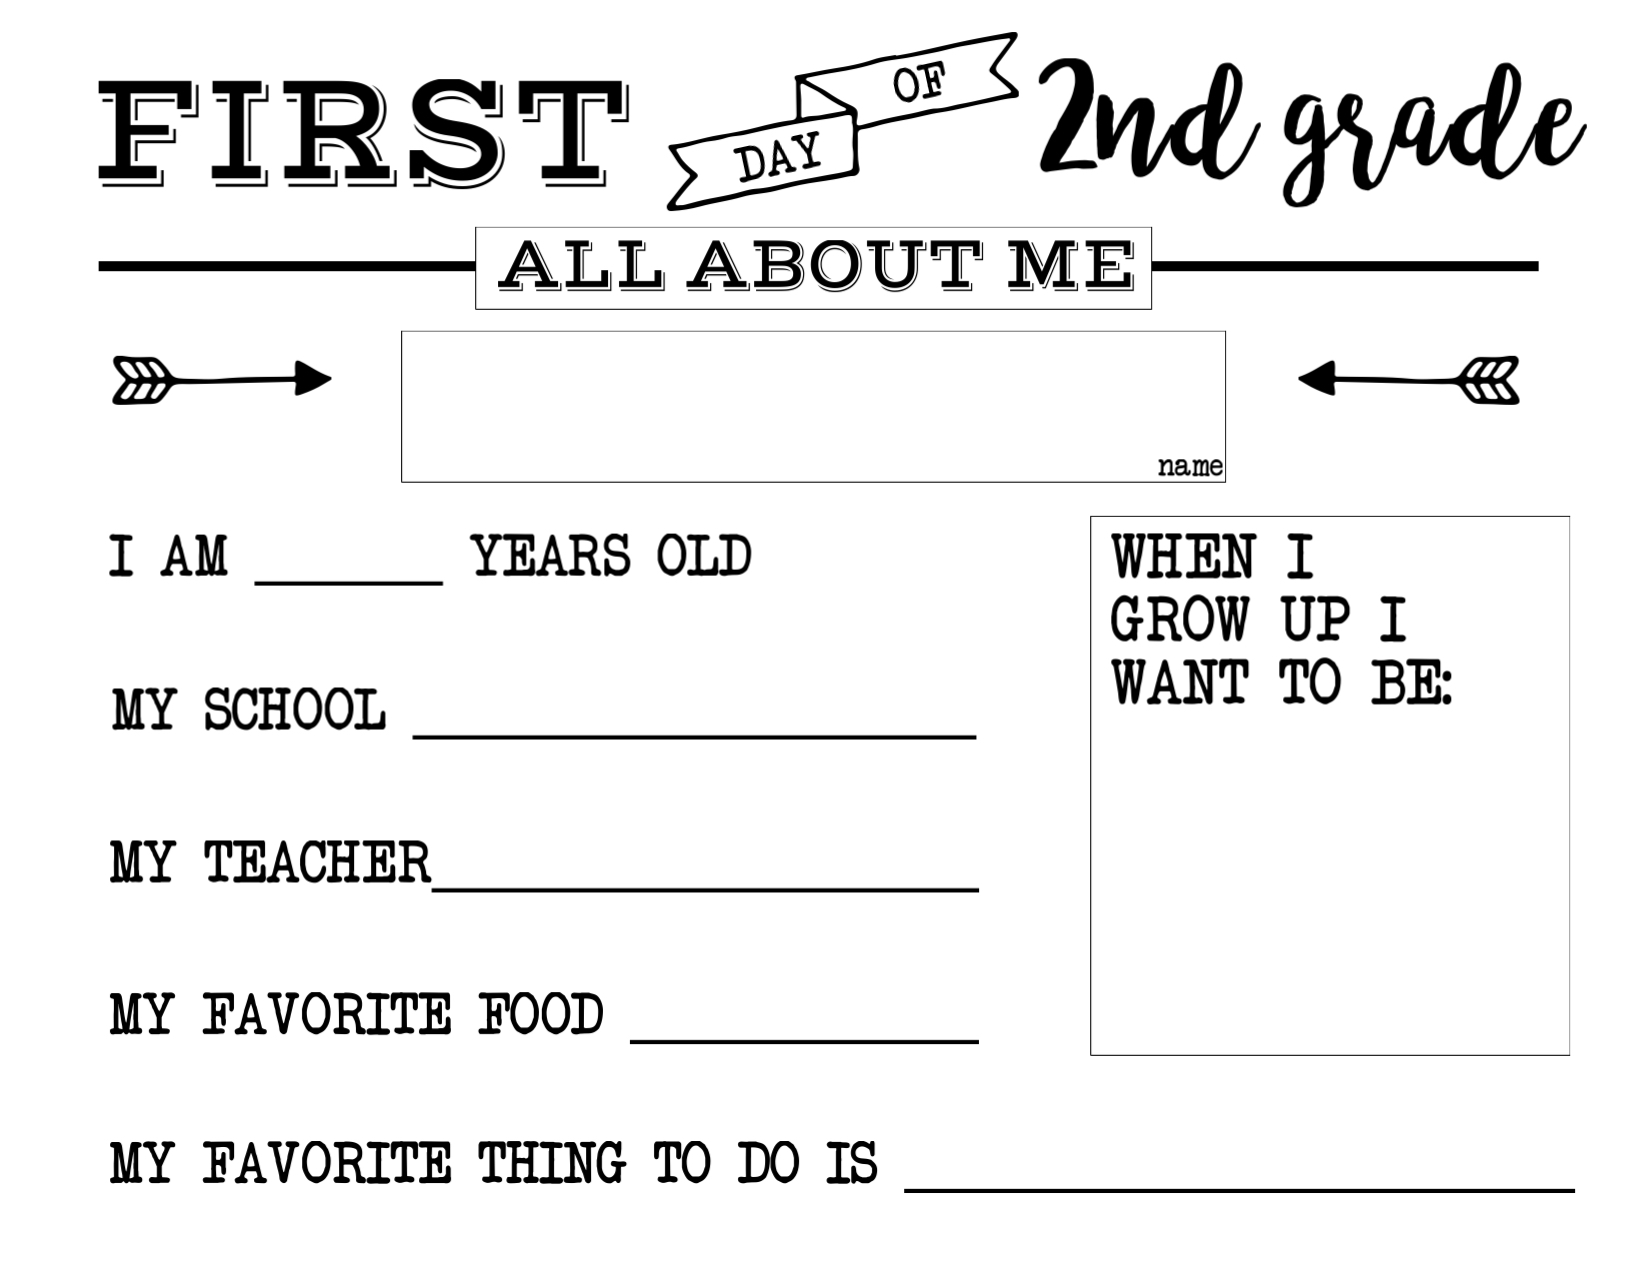 First Day of School All About Me Sign - Paper Trail Design